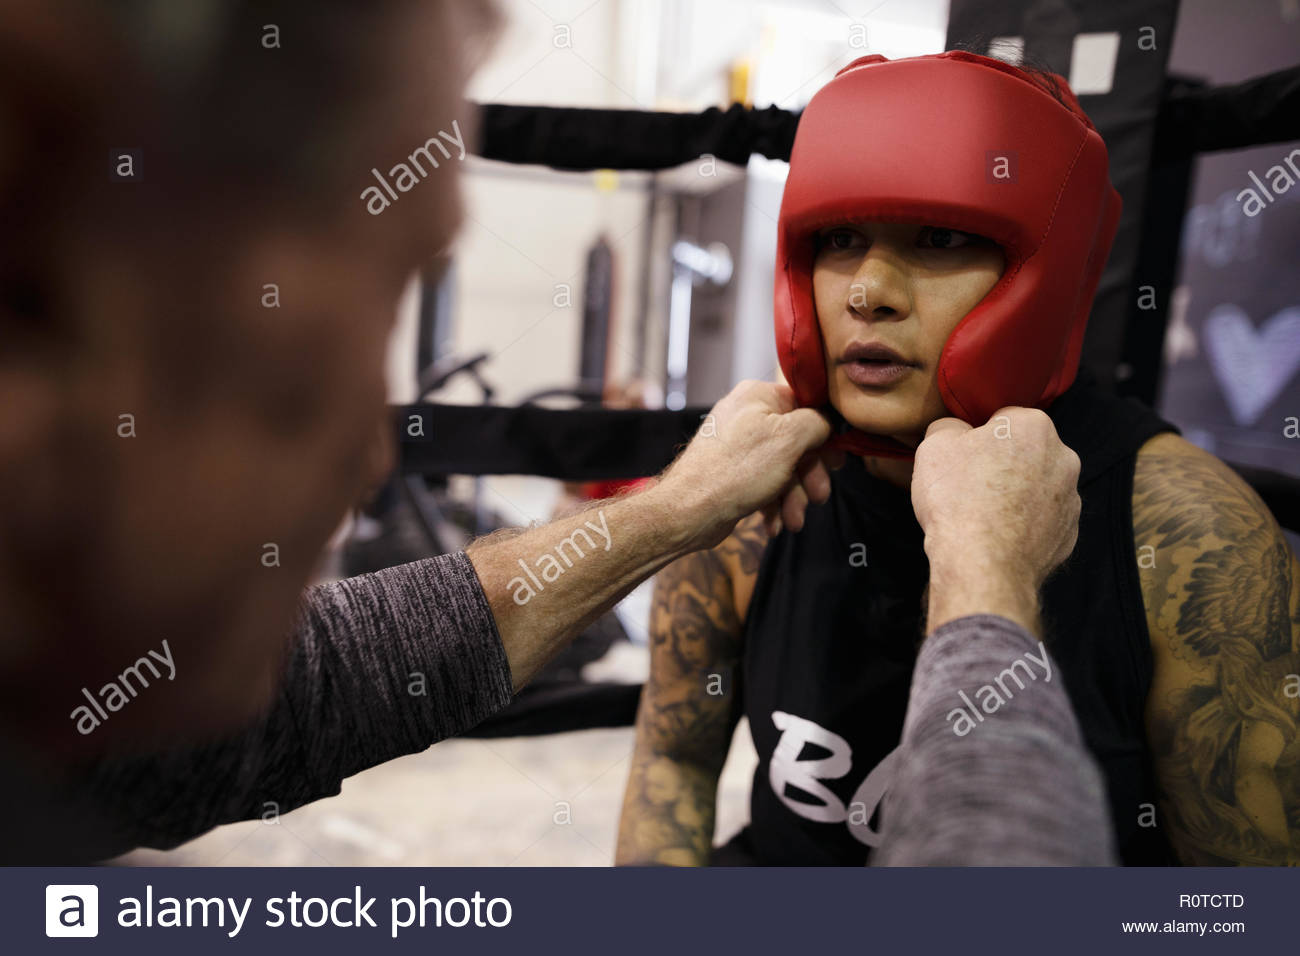 Trainer fastening protective headgear on female boxer - Stock Image